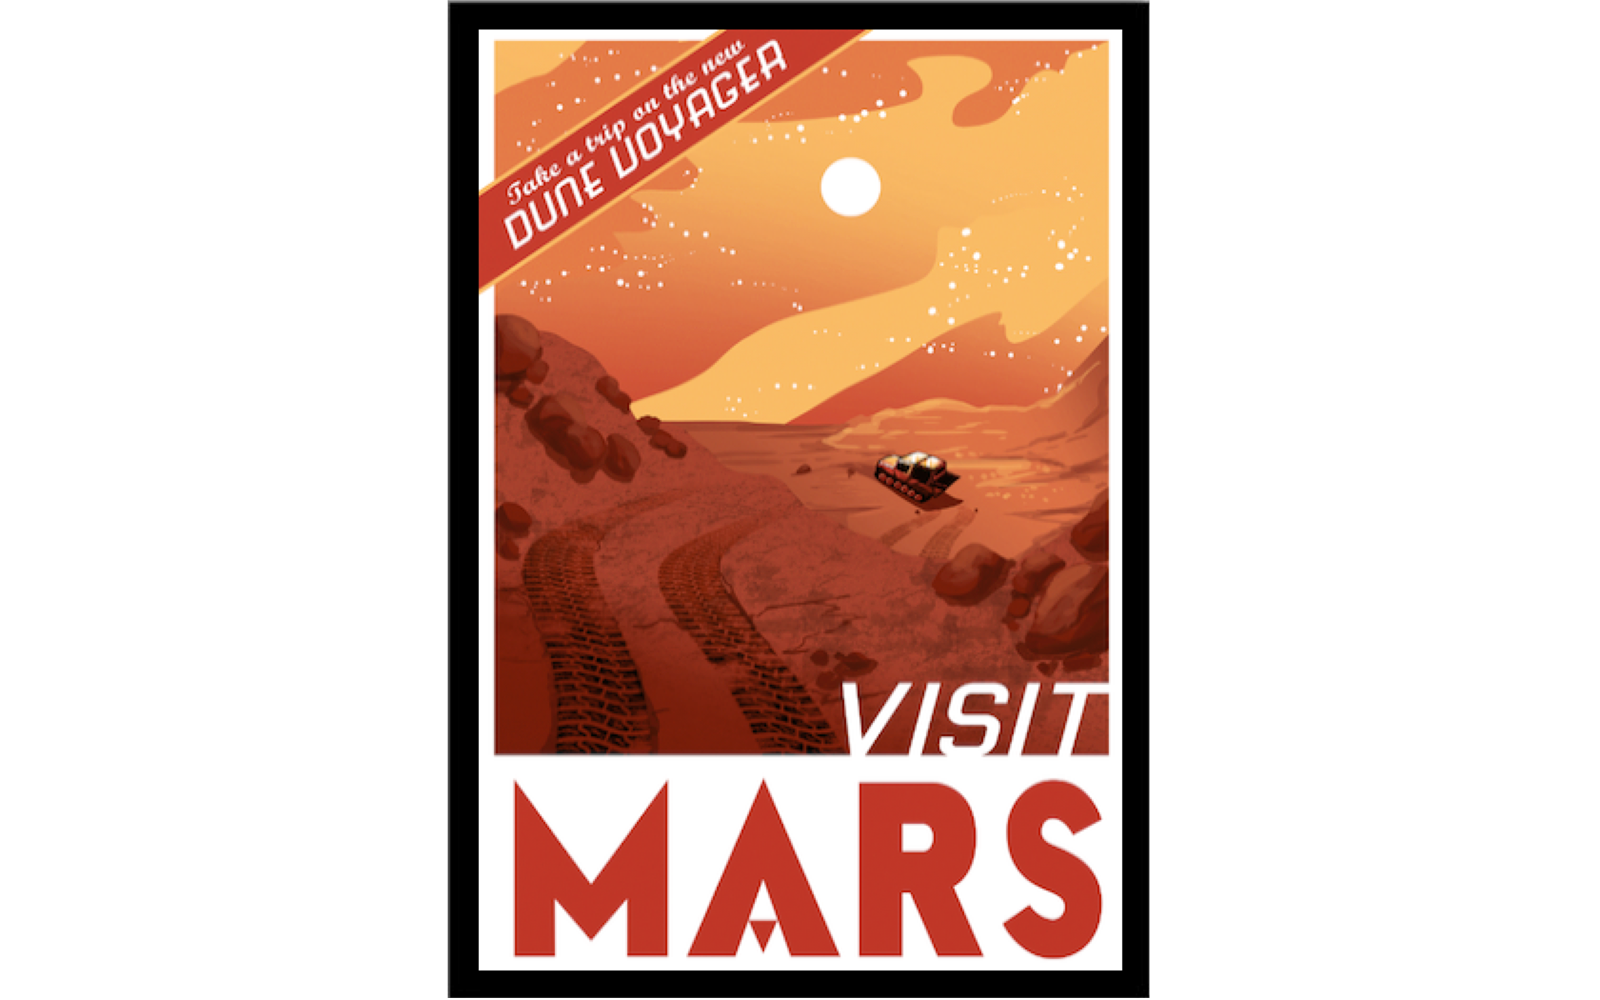 Vintage Space Travel Posters: Luxury Tented Camps in Martian Red Deserts